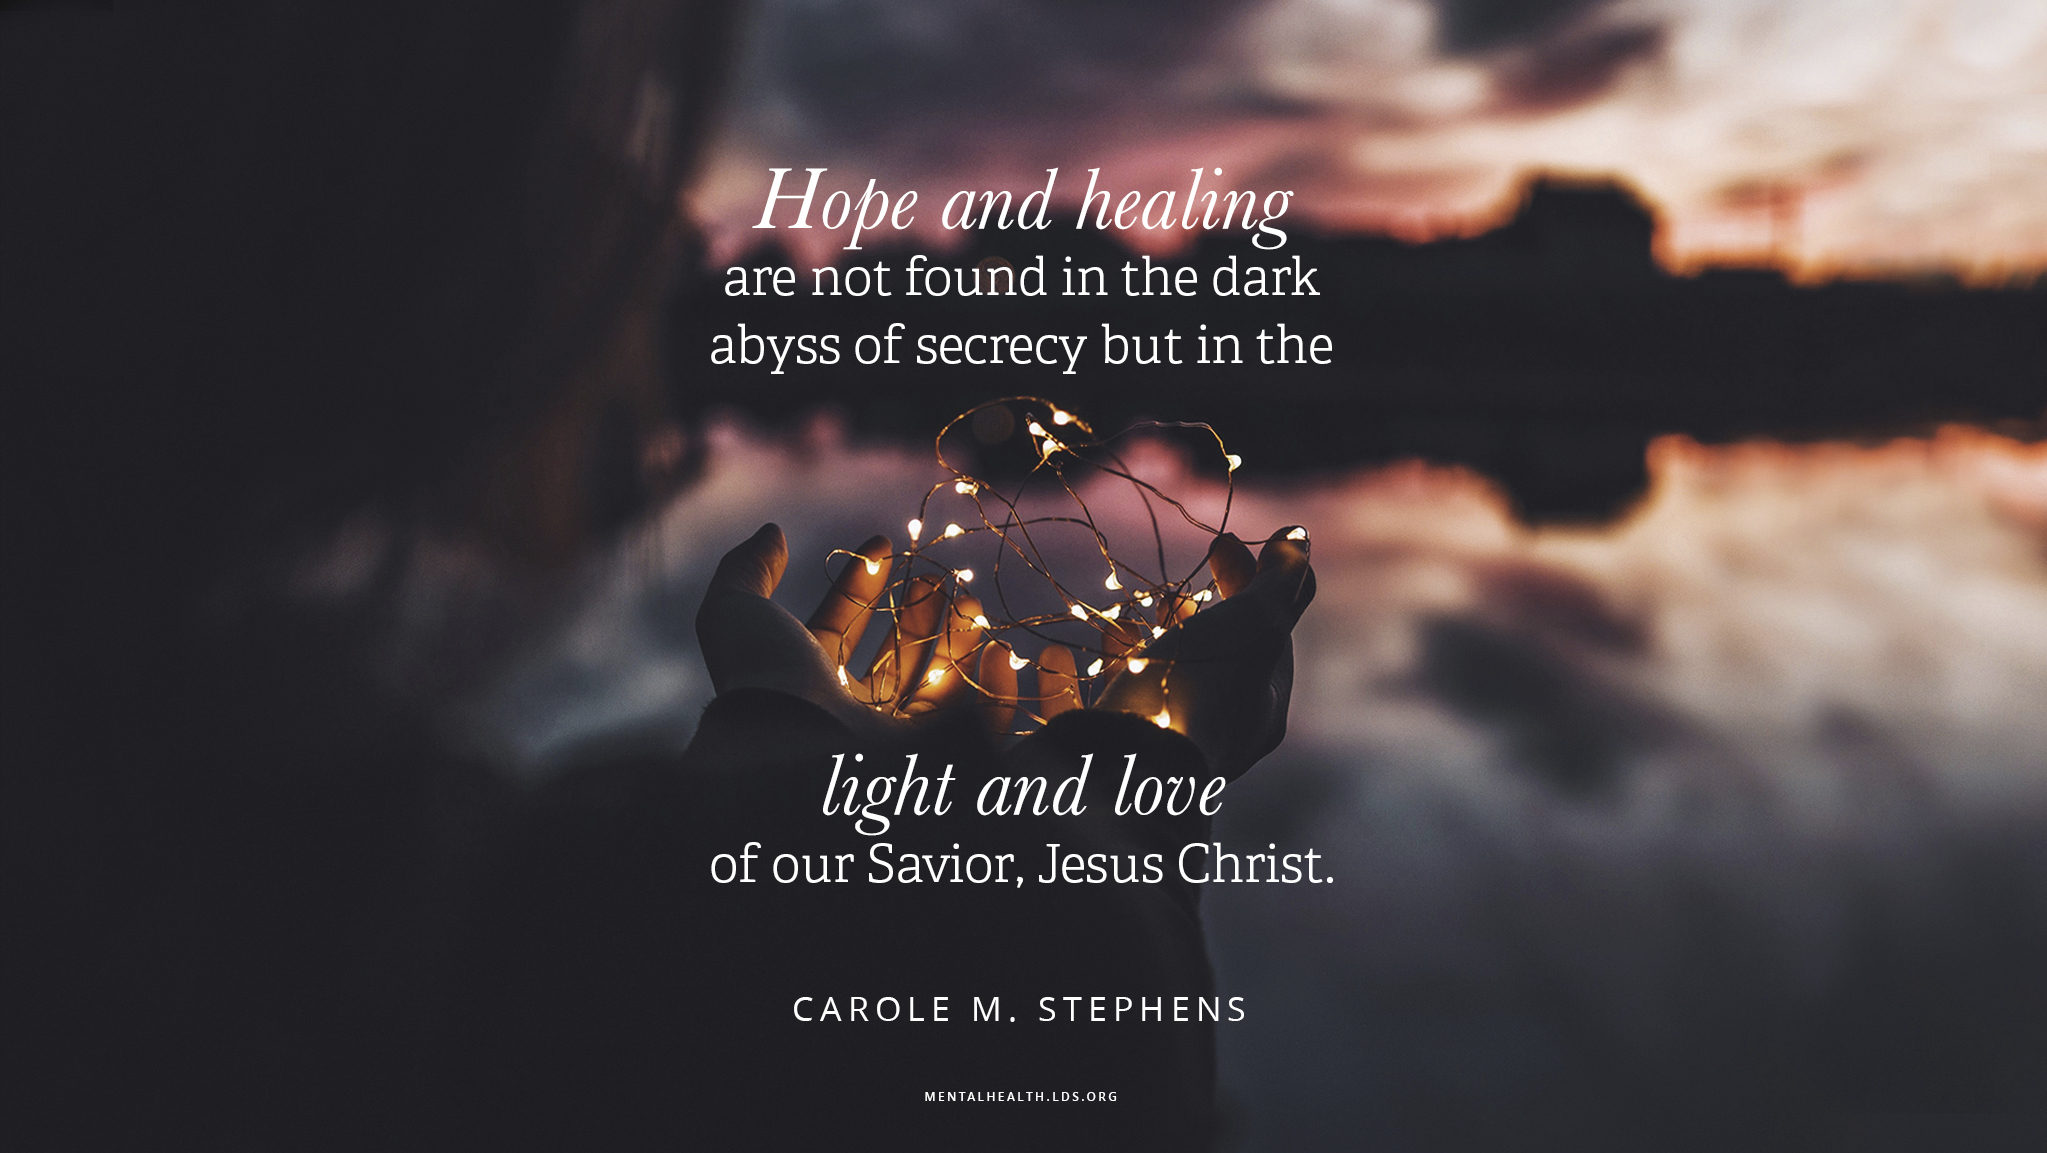 """""""Hope and healing are not found in the dark abyss of secrecy but in the light and love of our Savior, Jesus Christ.""""—Sister Carole M. Stephens, """"The Master Healer"""""""